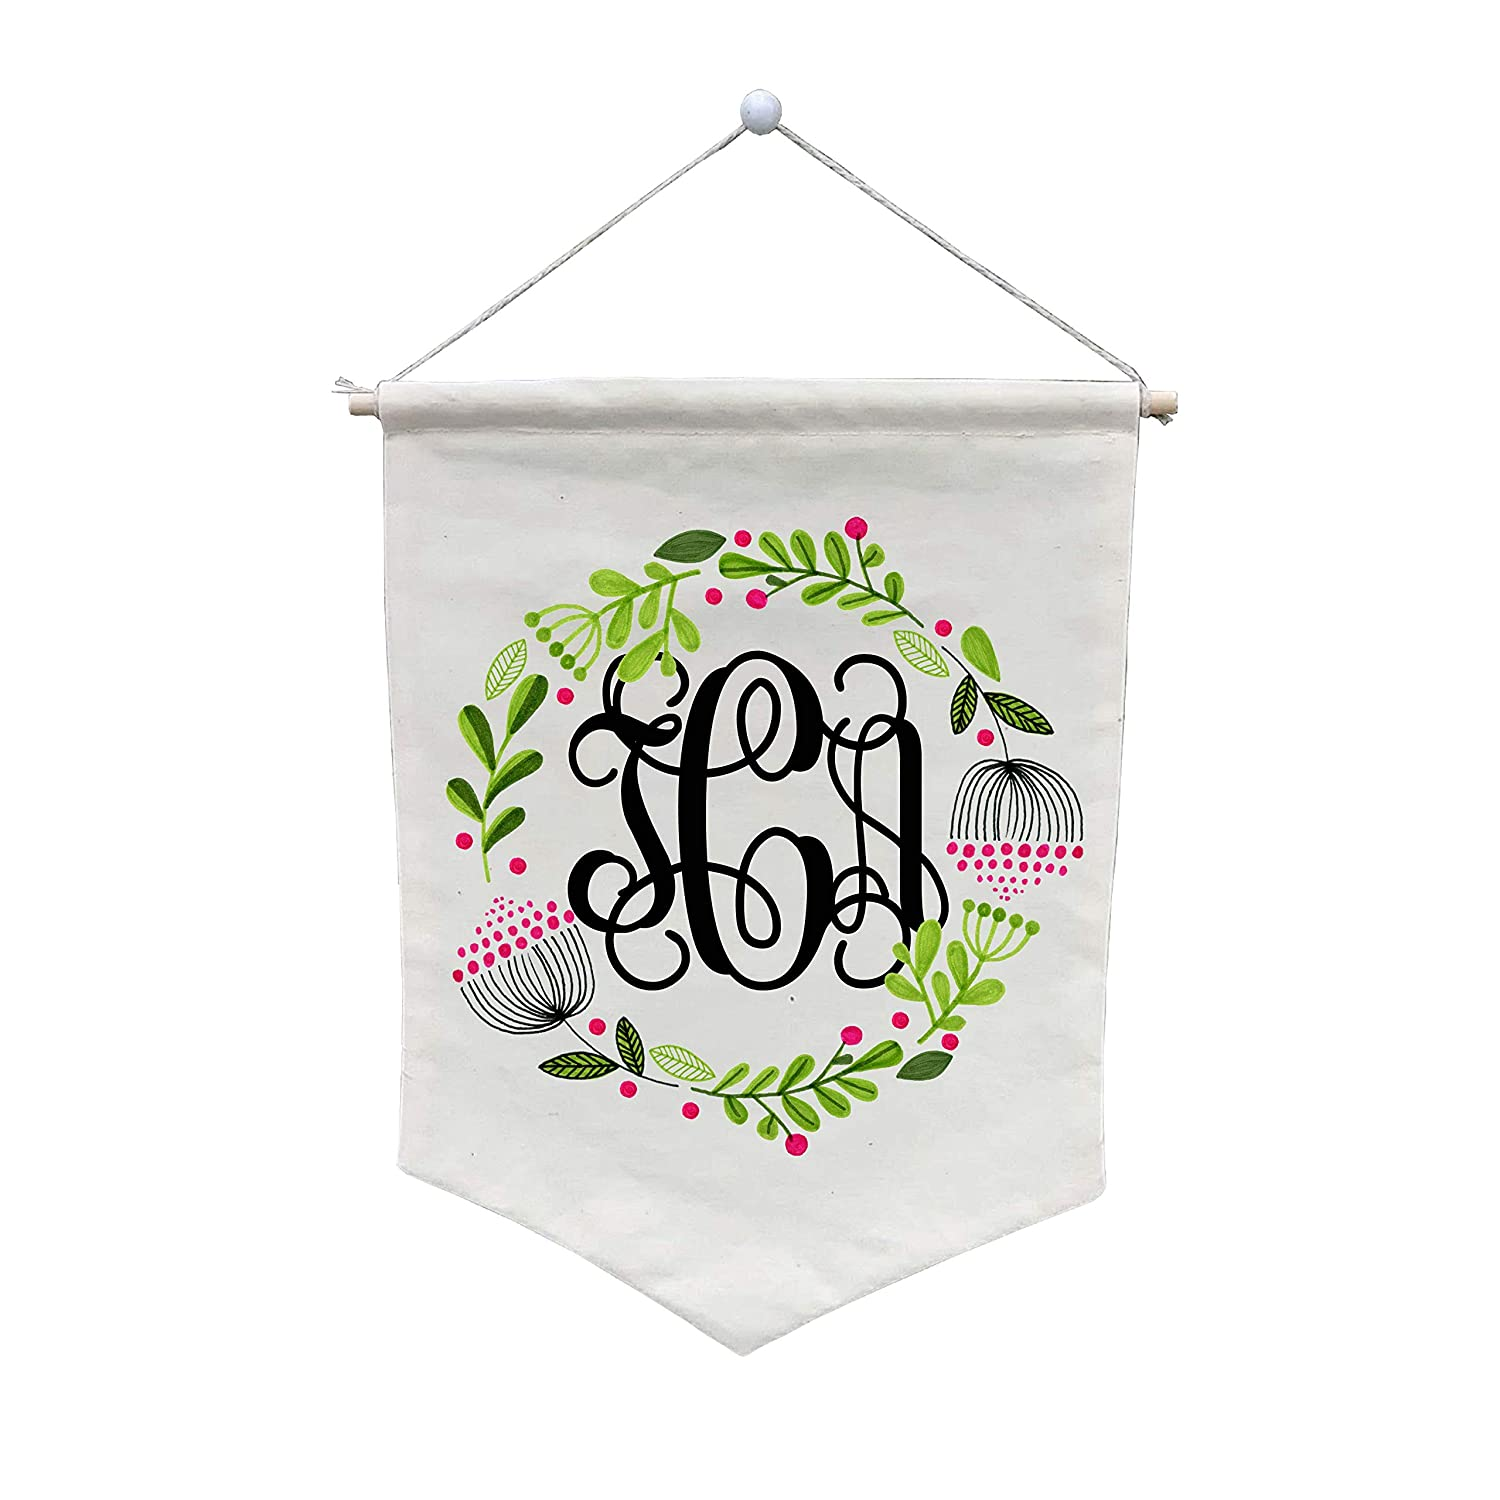 Floral Wreath Regular store Bouquet Monogram Wall Banner WB246 - Customize High quality new